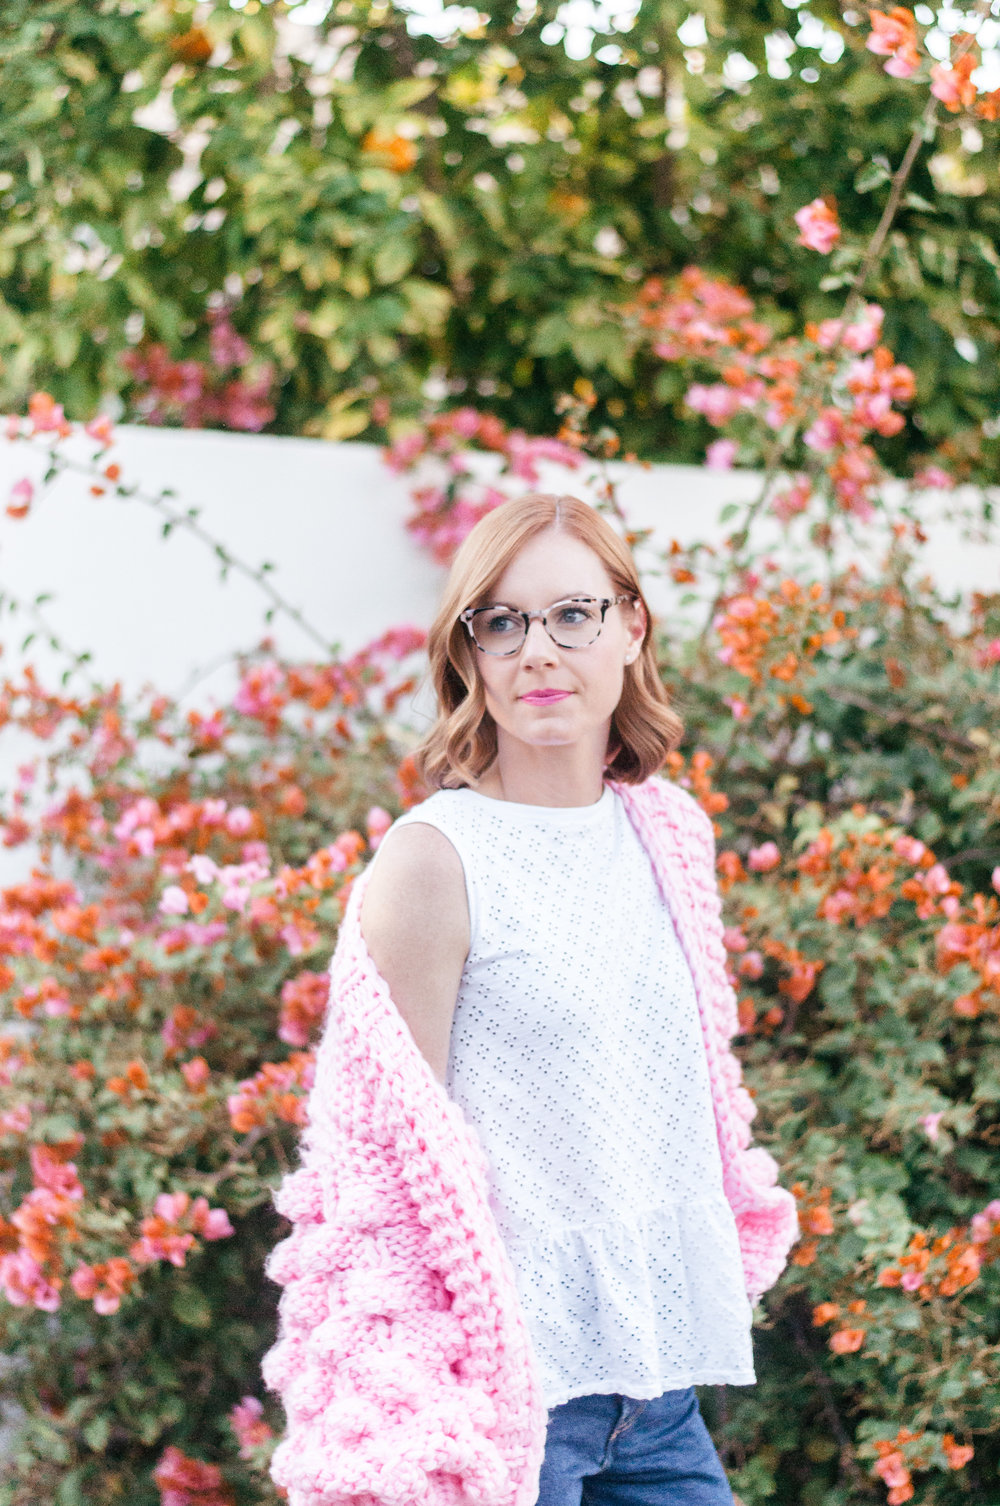 Casual Spring Outfit with White Eyelet Top, Pink Chicwish Sweater and Tortoise Glasses for Women